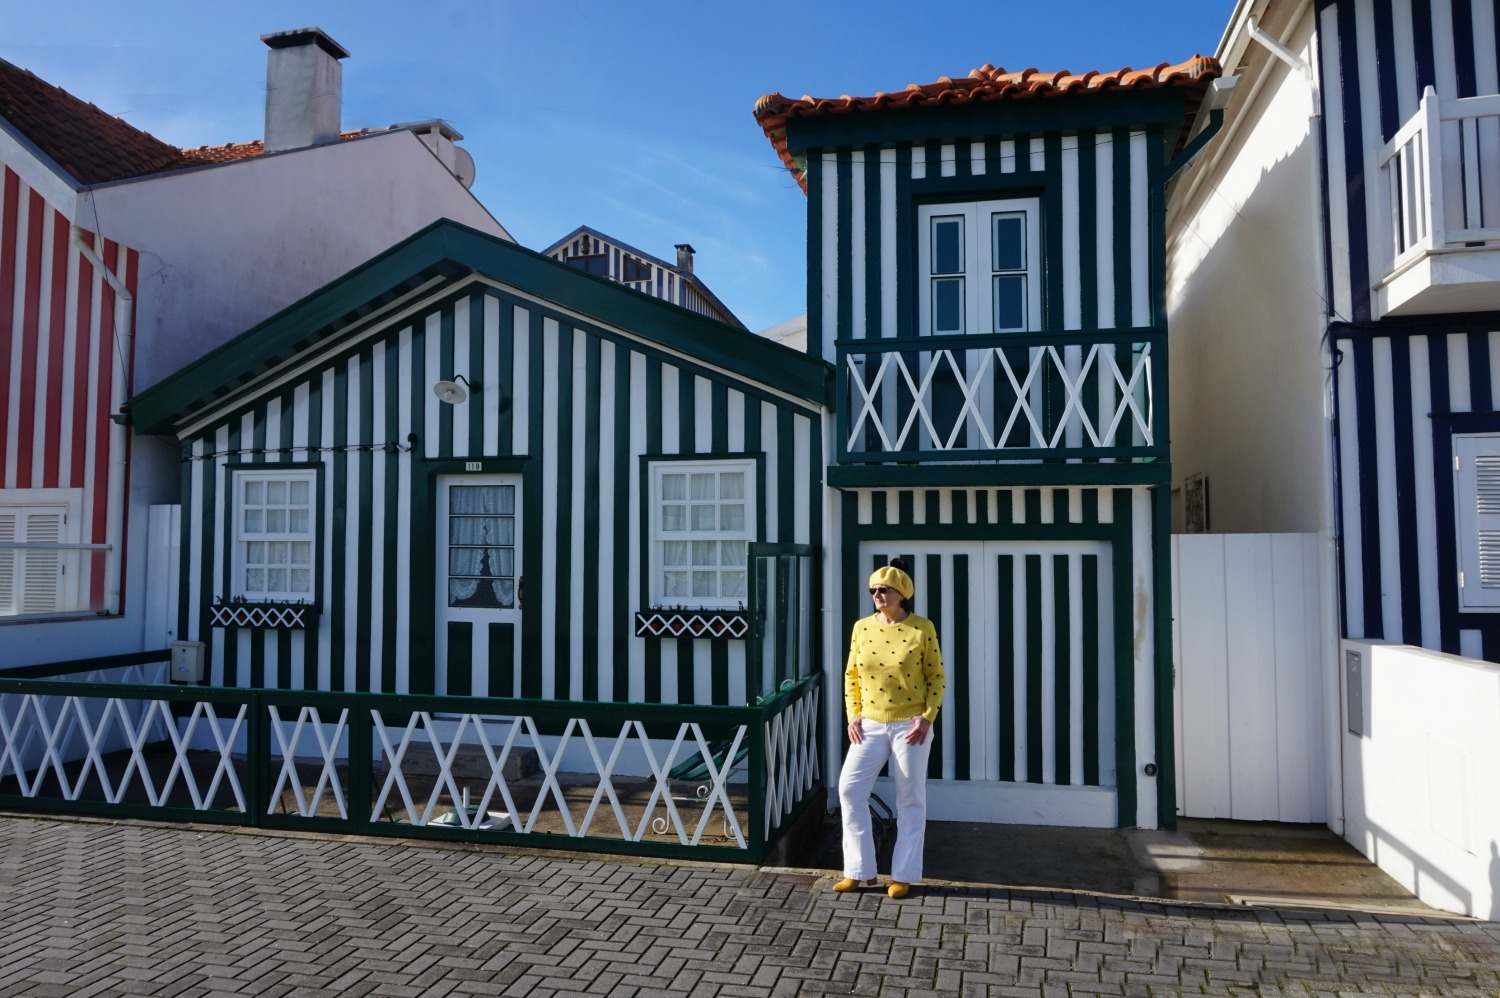 Portugal - one week itinerary. Costa Nova is a heaven for Instagram photos!